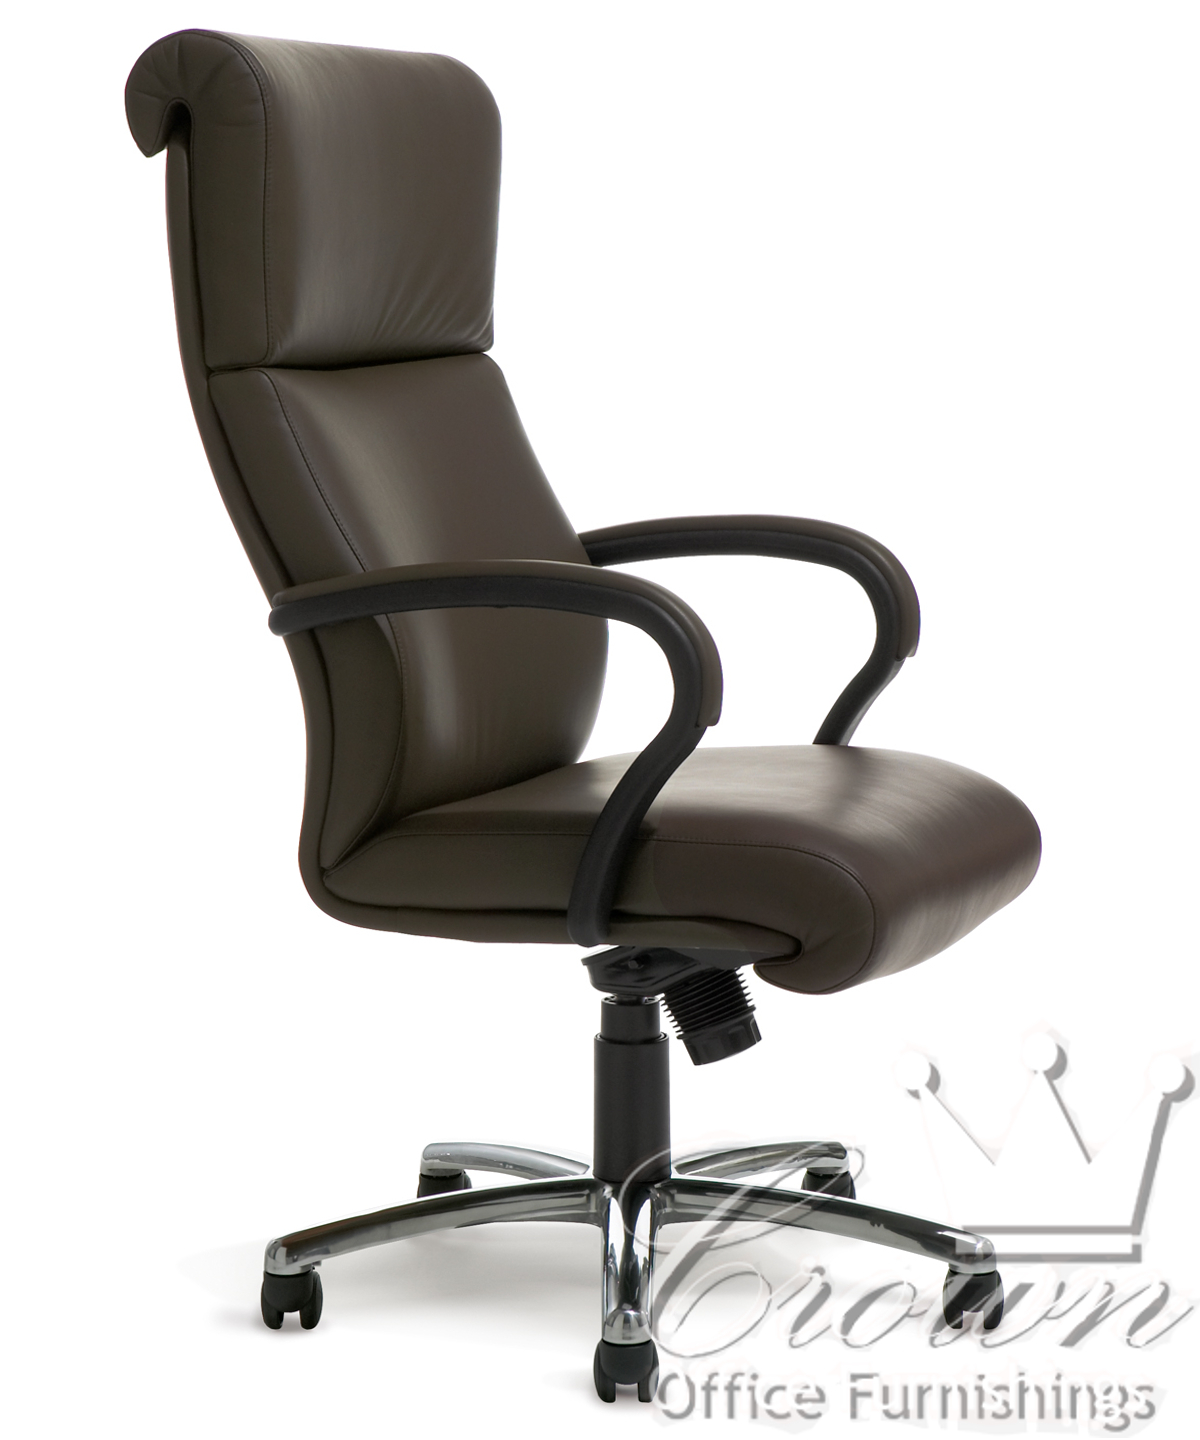 Wave Crown Office Furniture Tulsa Oklahoma